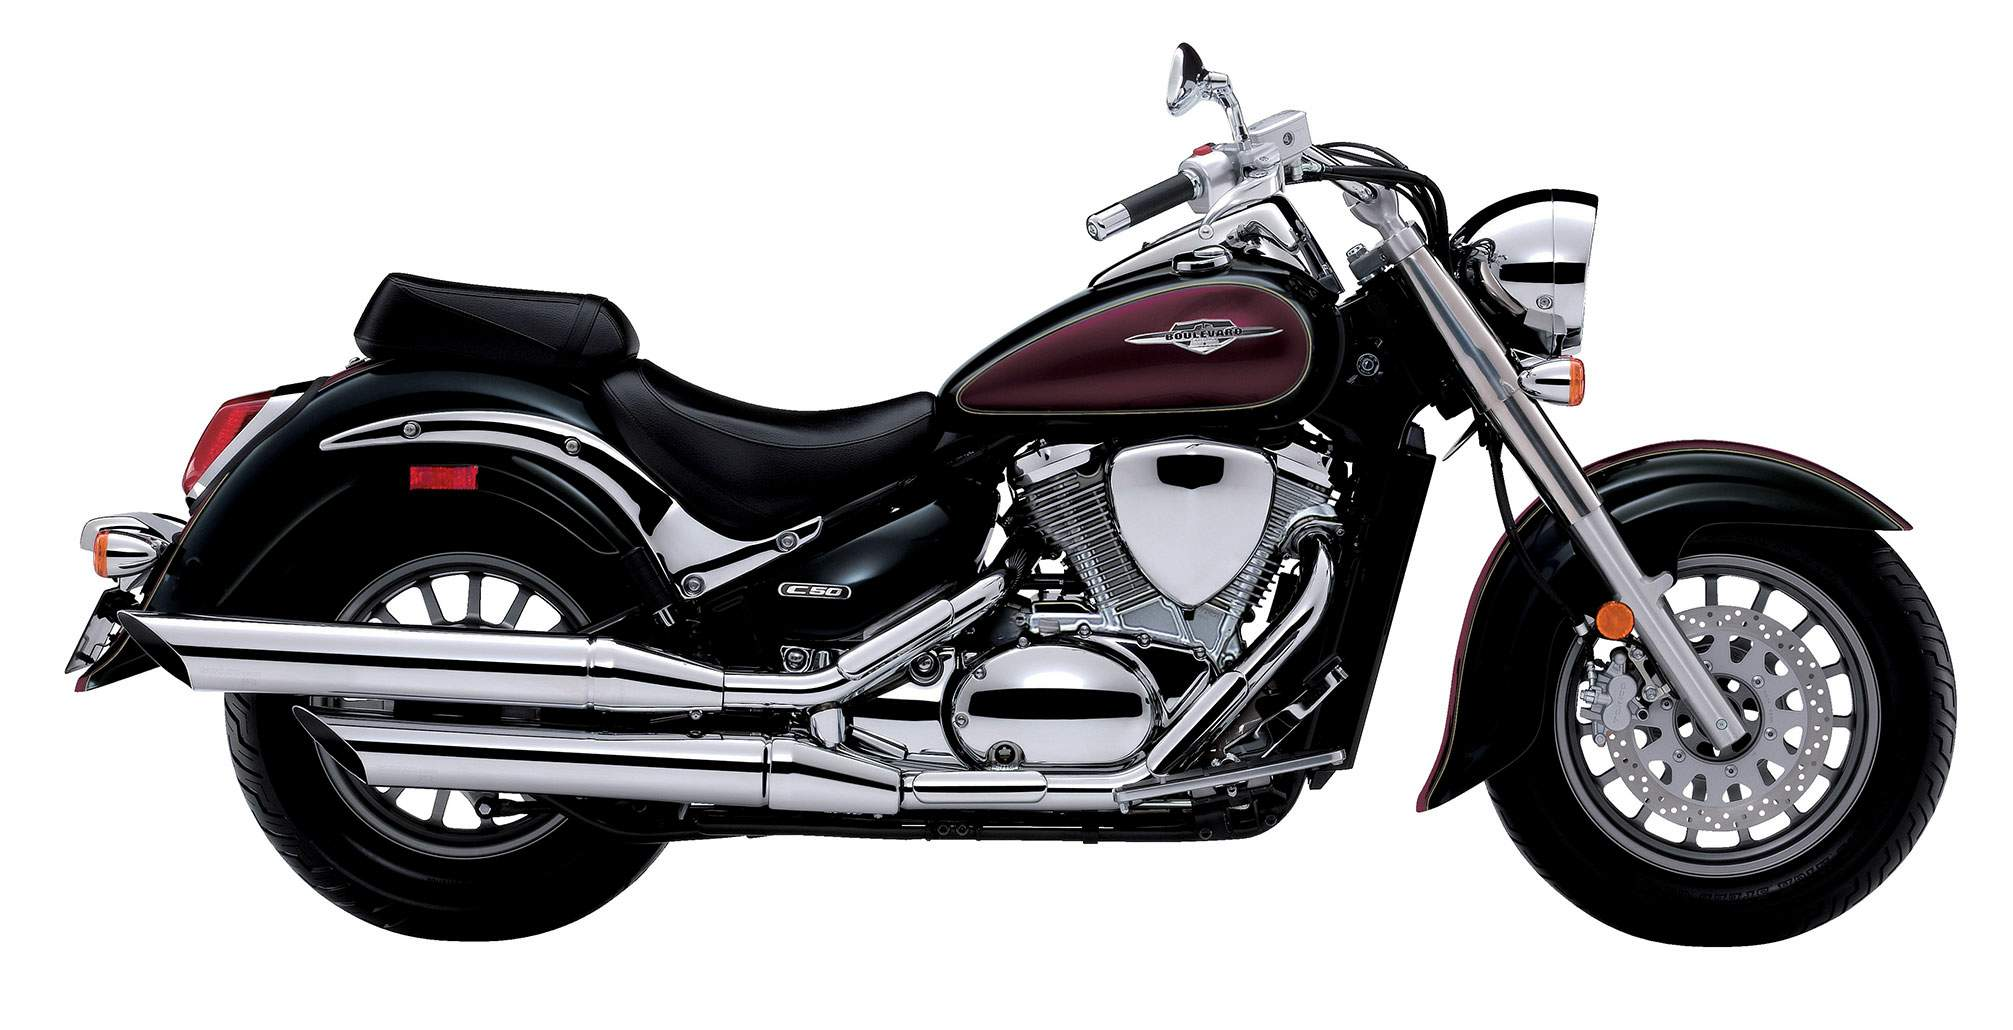 Suzuki Boulevard C50SE For Sale Specifications, Price and Images